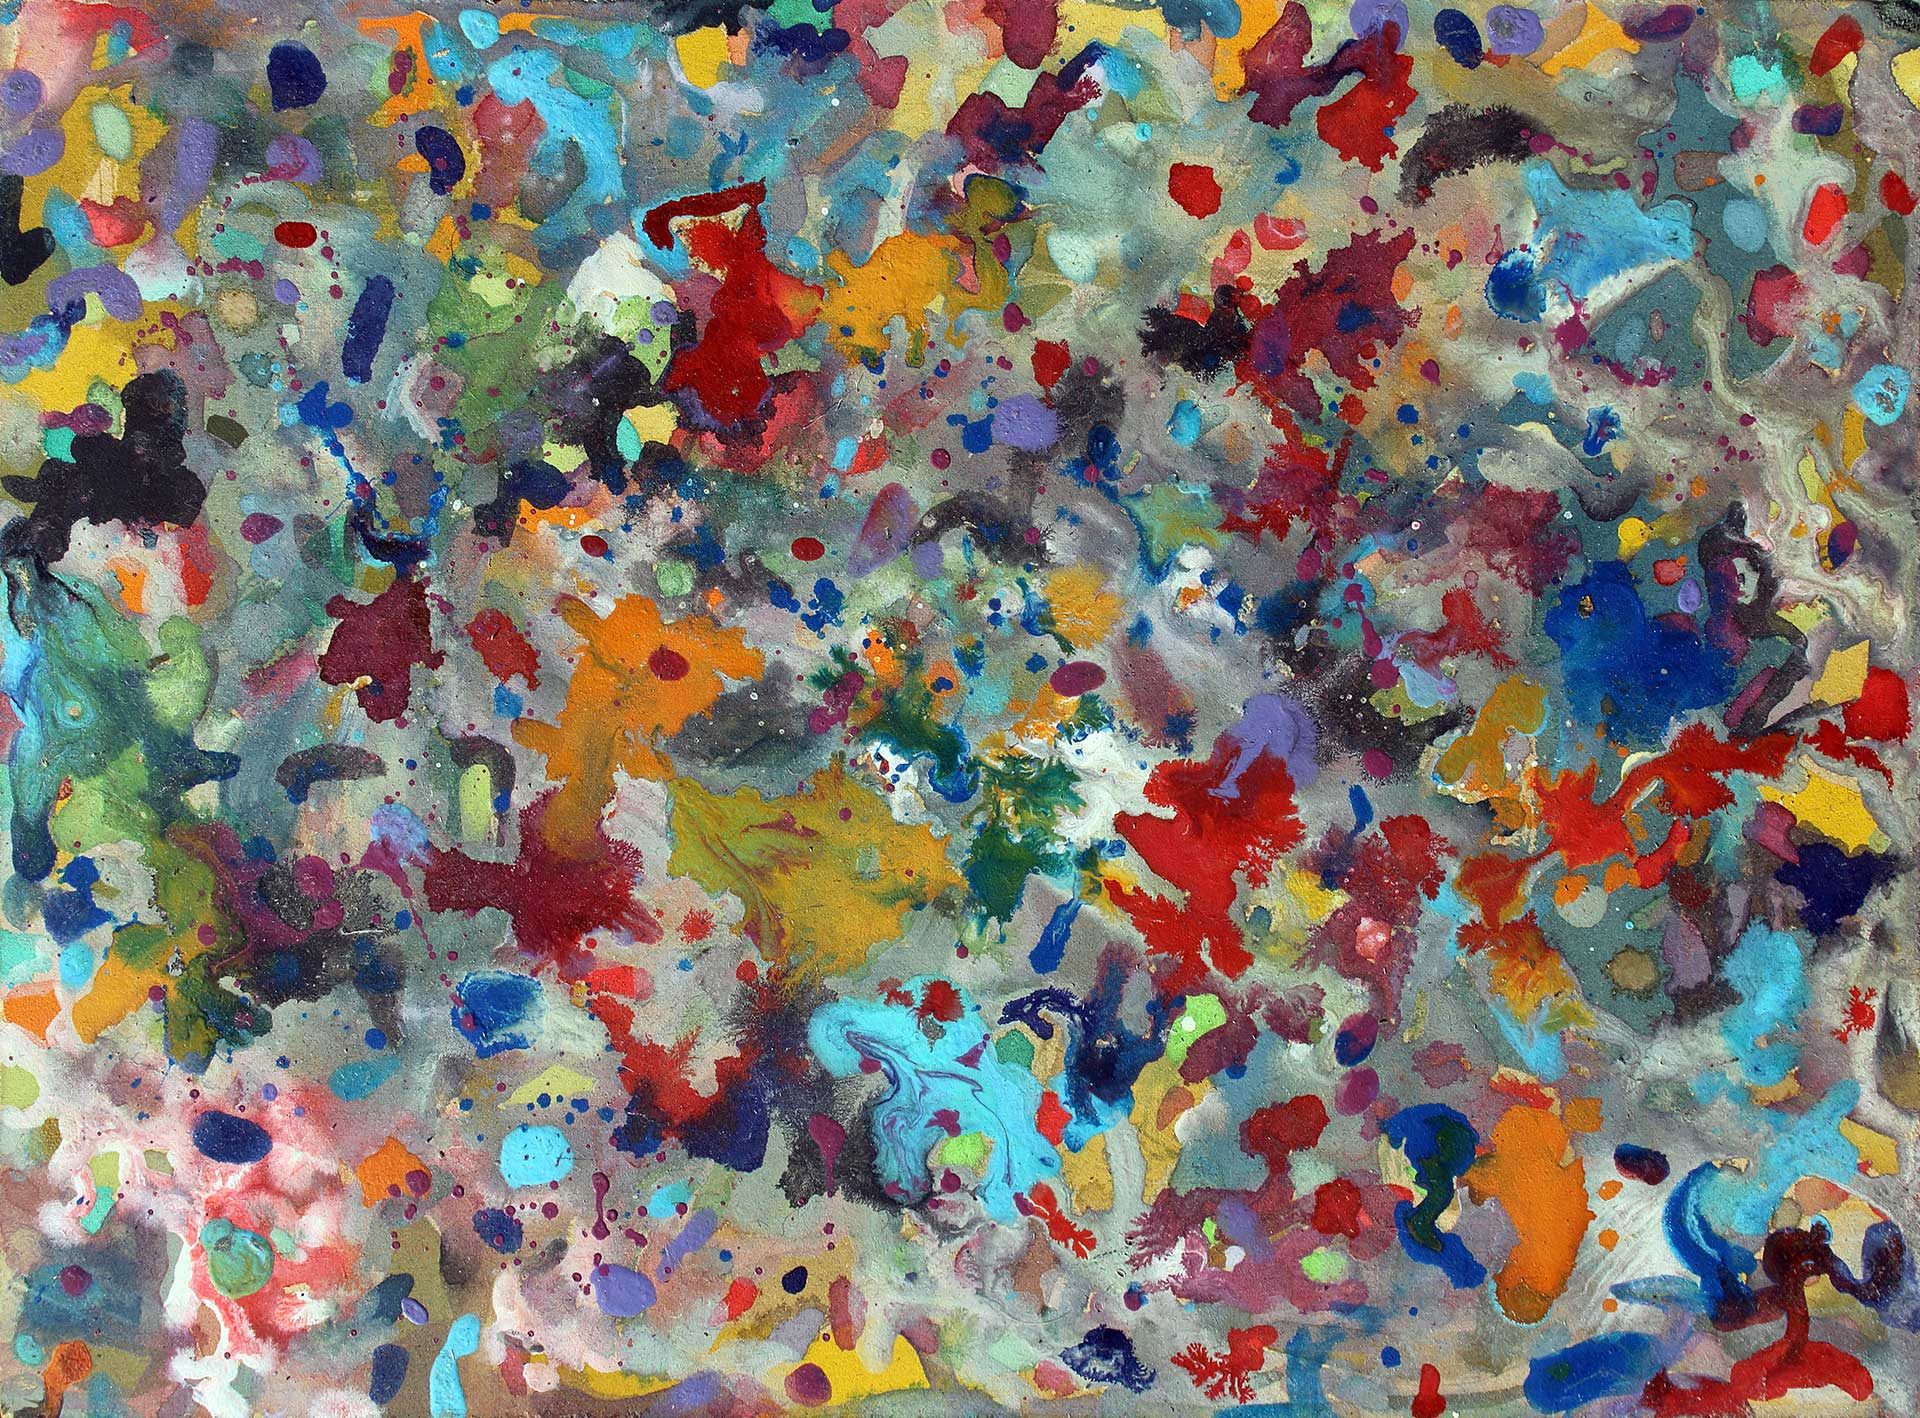 Abstract expressionism painting - Crowd of spectators at a football match